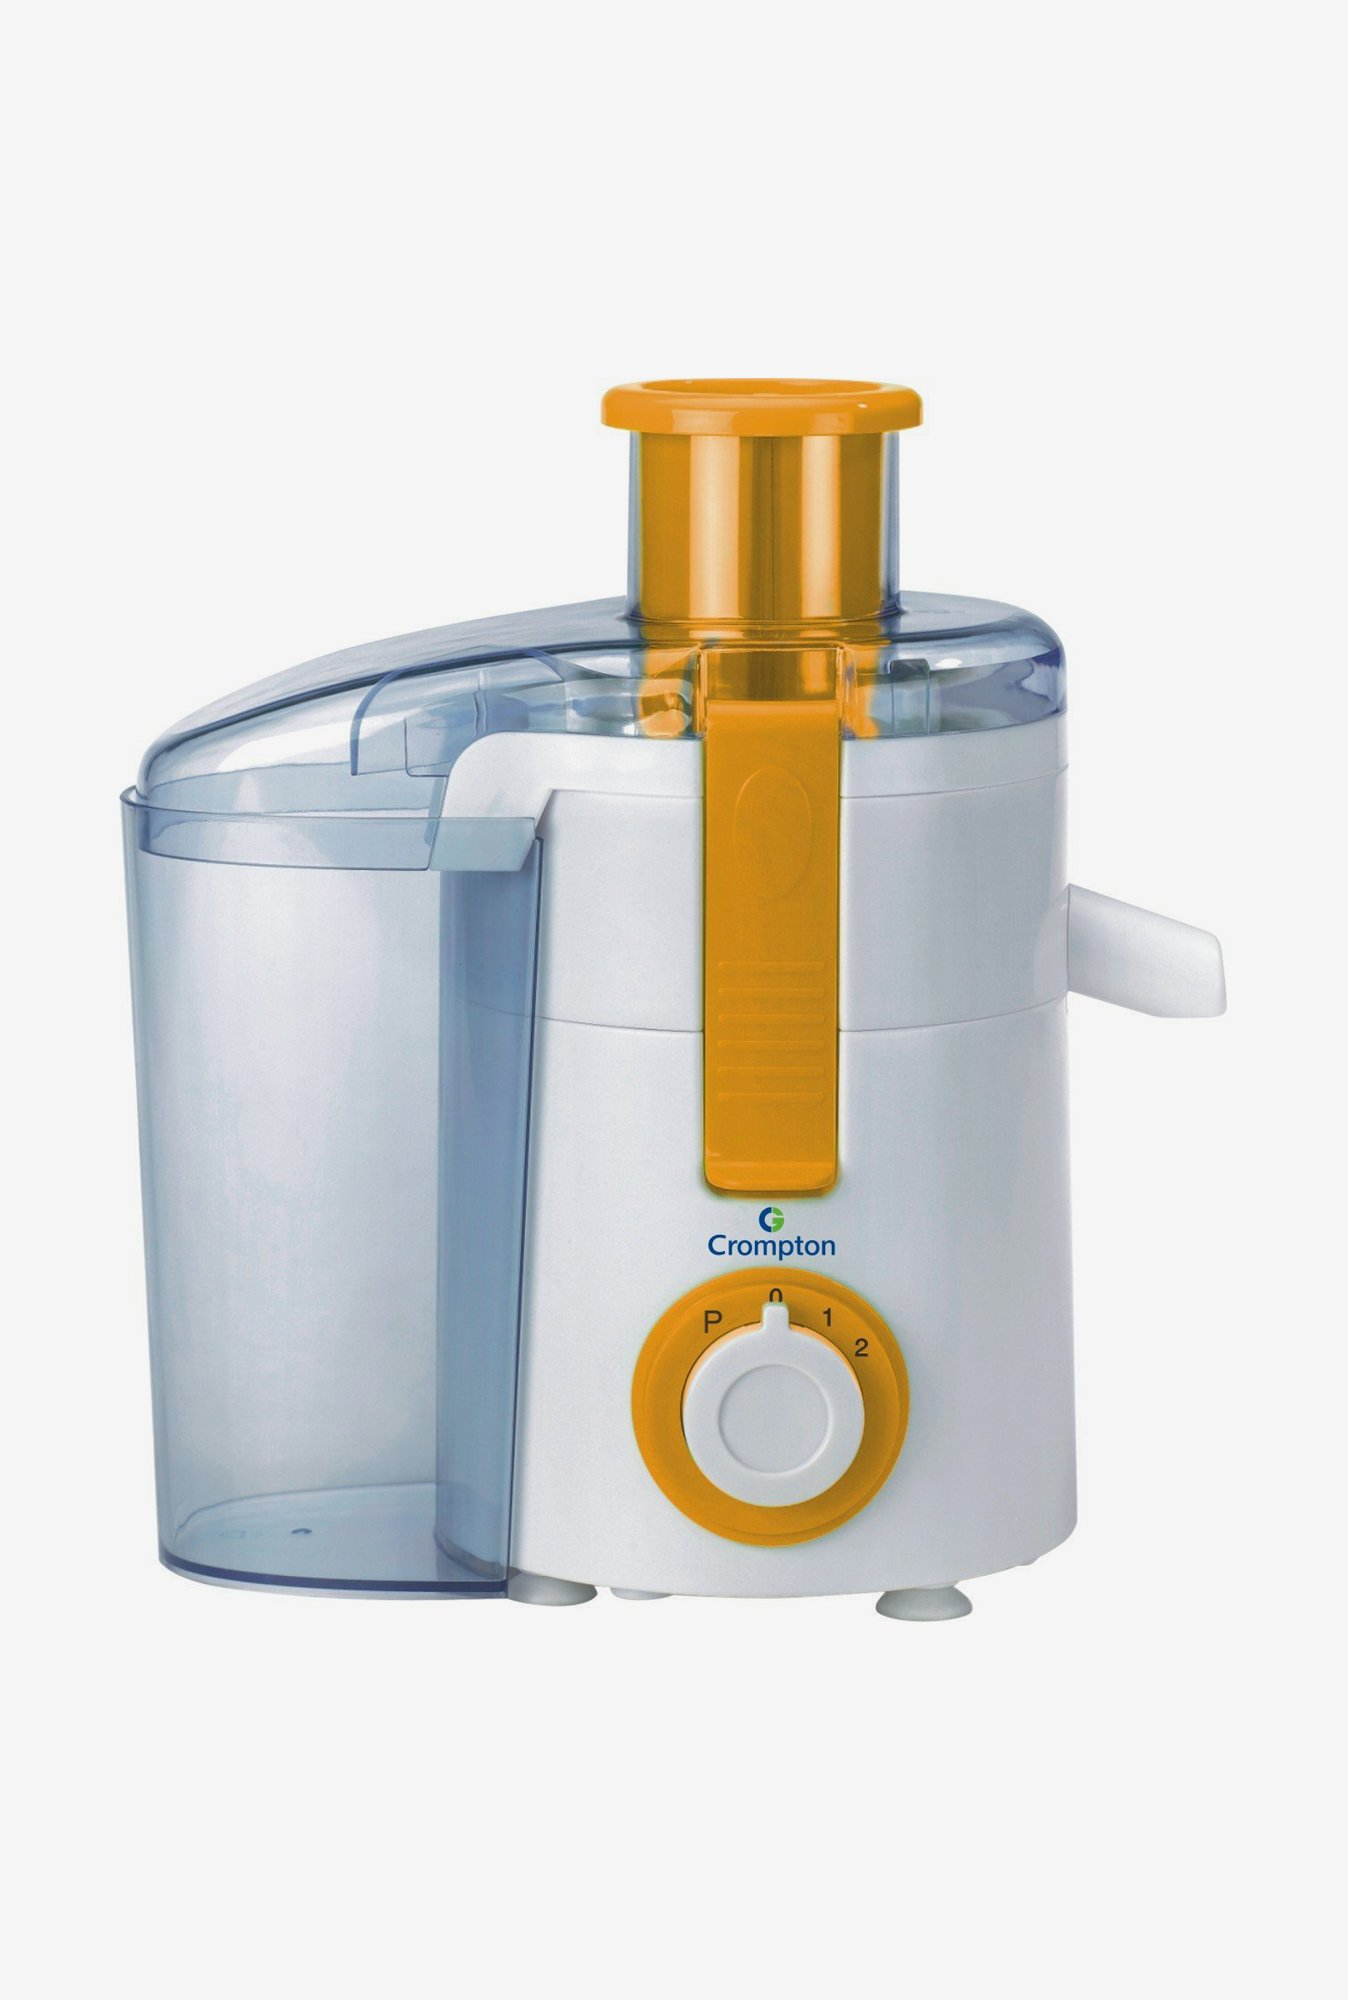 Crompton ACGJE-JES30-I Juicer Extractor with 1.4 Litre Pulp Collector